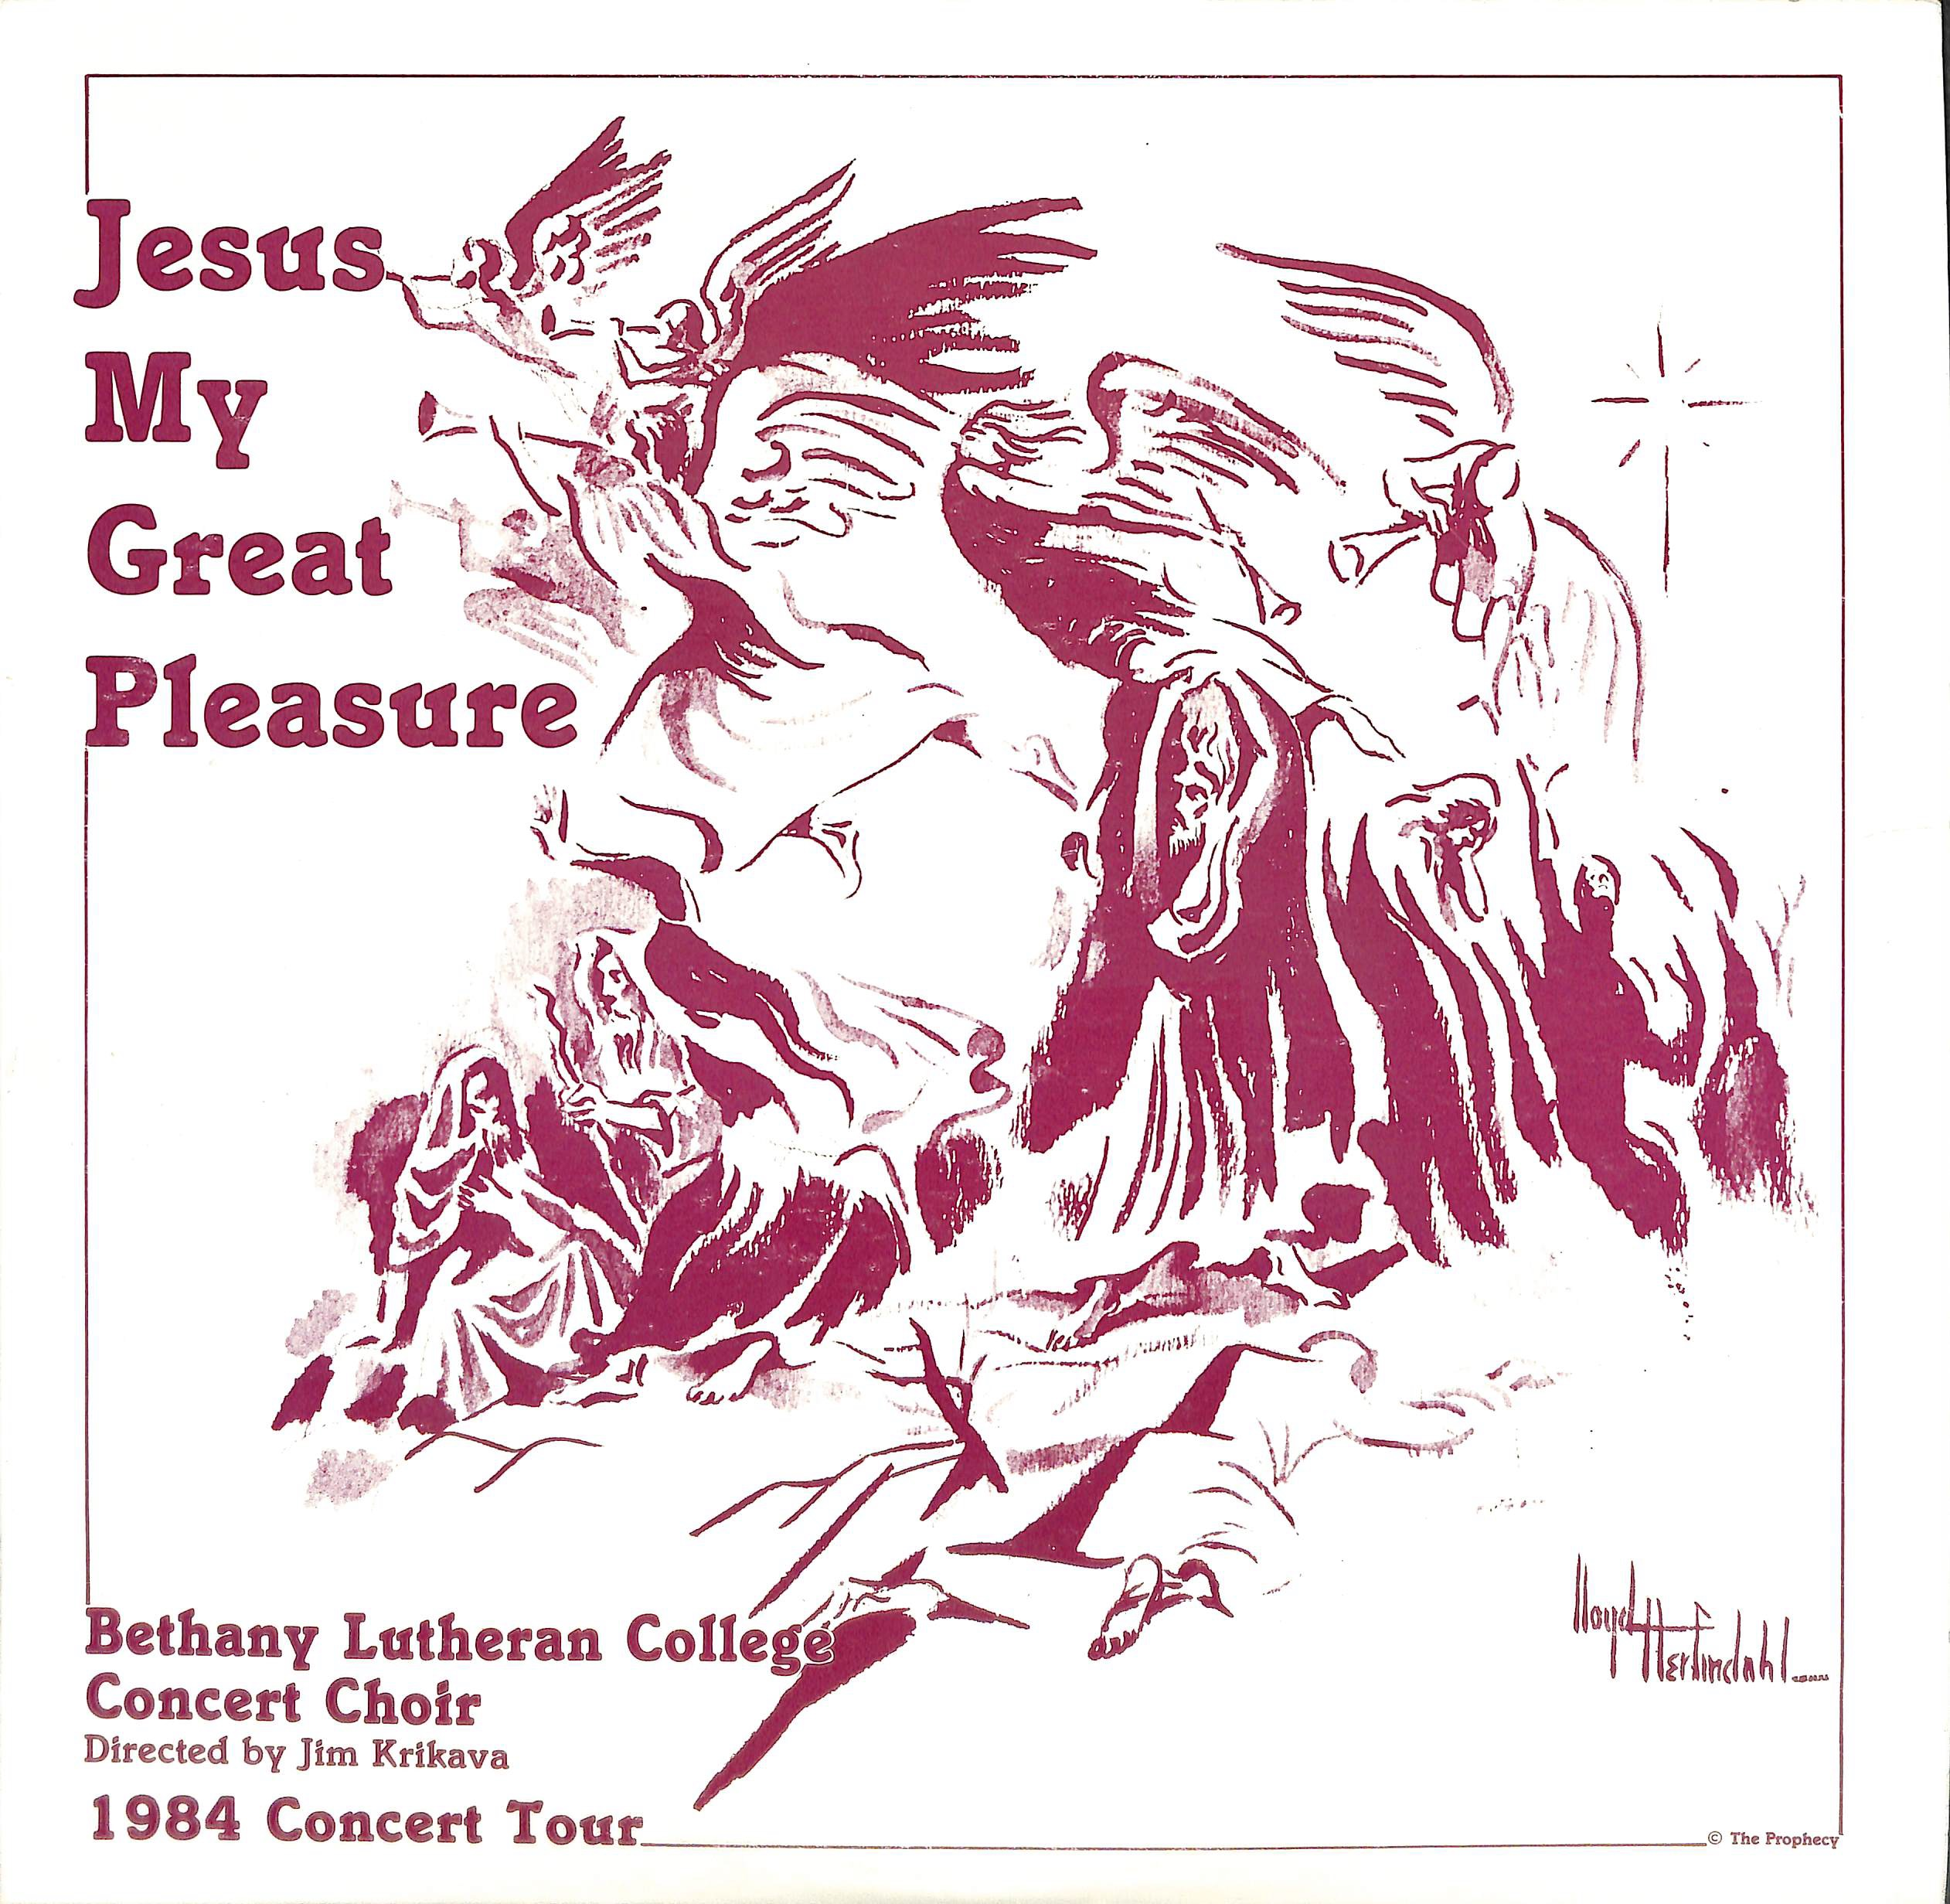 The Bethany Lutheran College Choir 1984: Jesus, My Great Pleasure